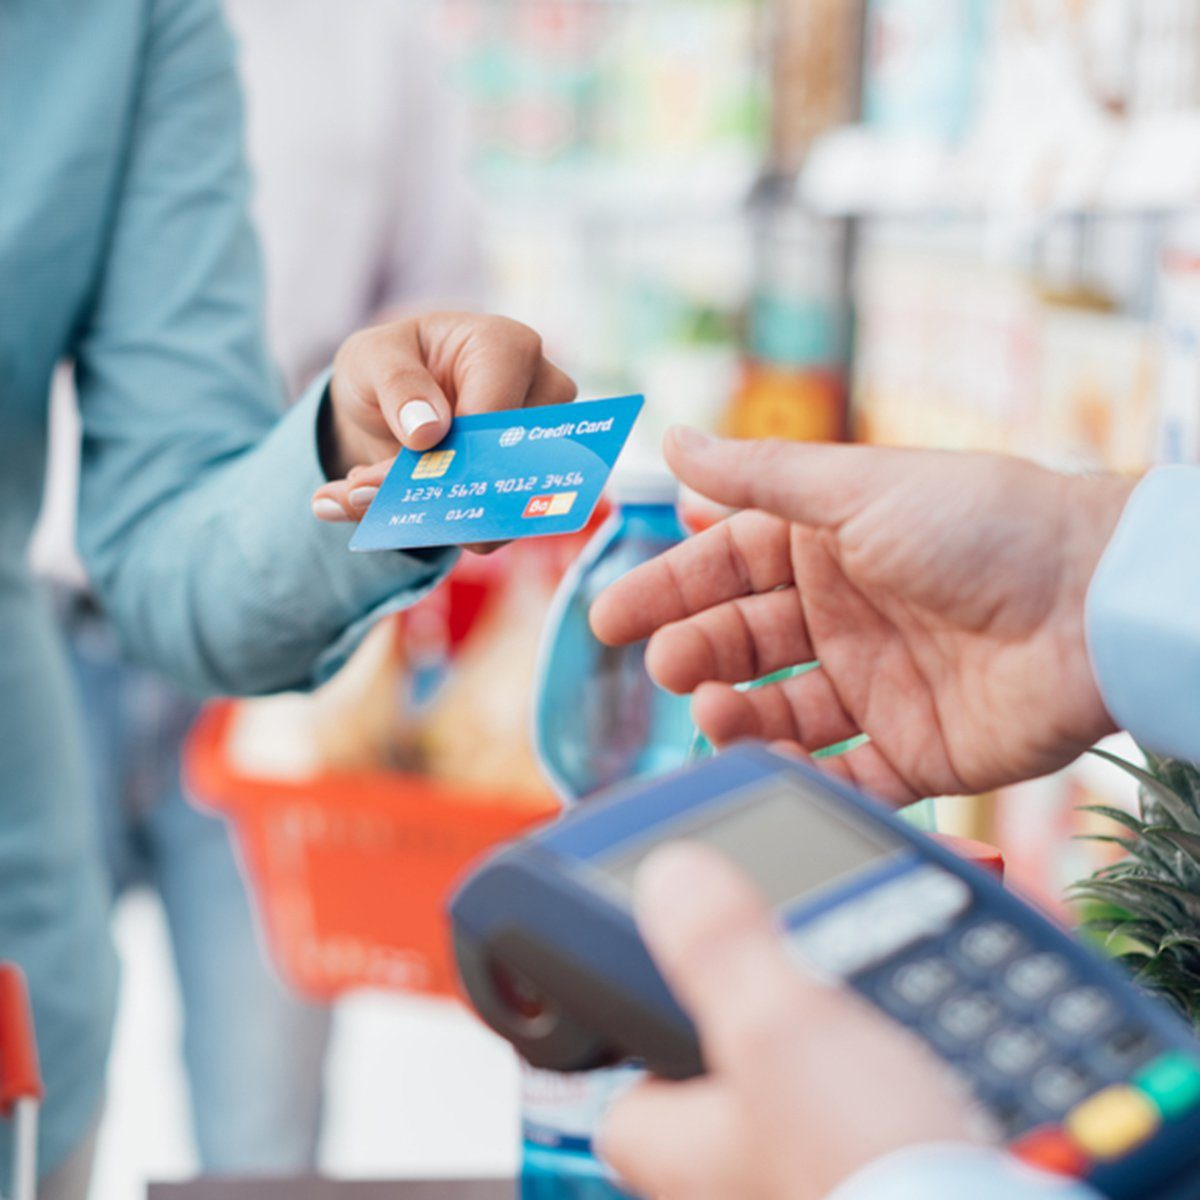 Woman at the supermarket checkout, she is paying using a credit card, shopping and retail concept; Shutterstock ID 503419588